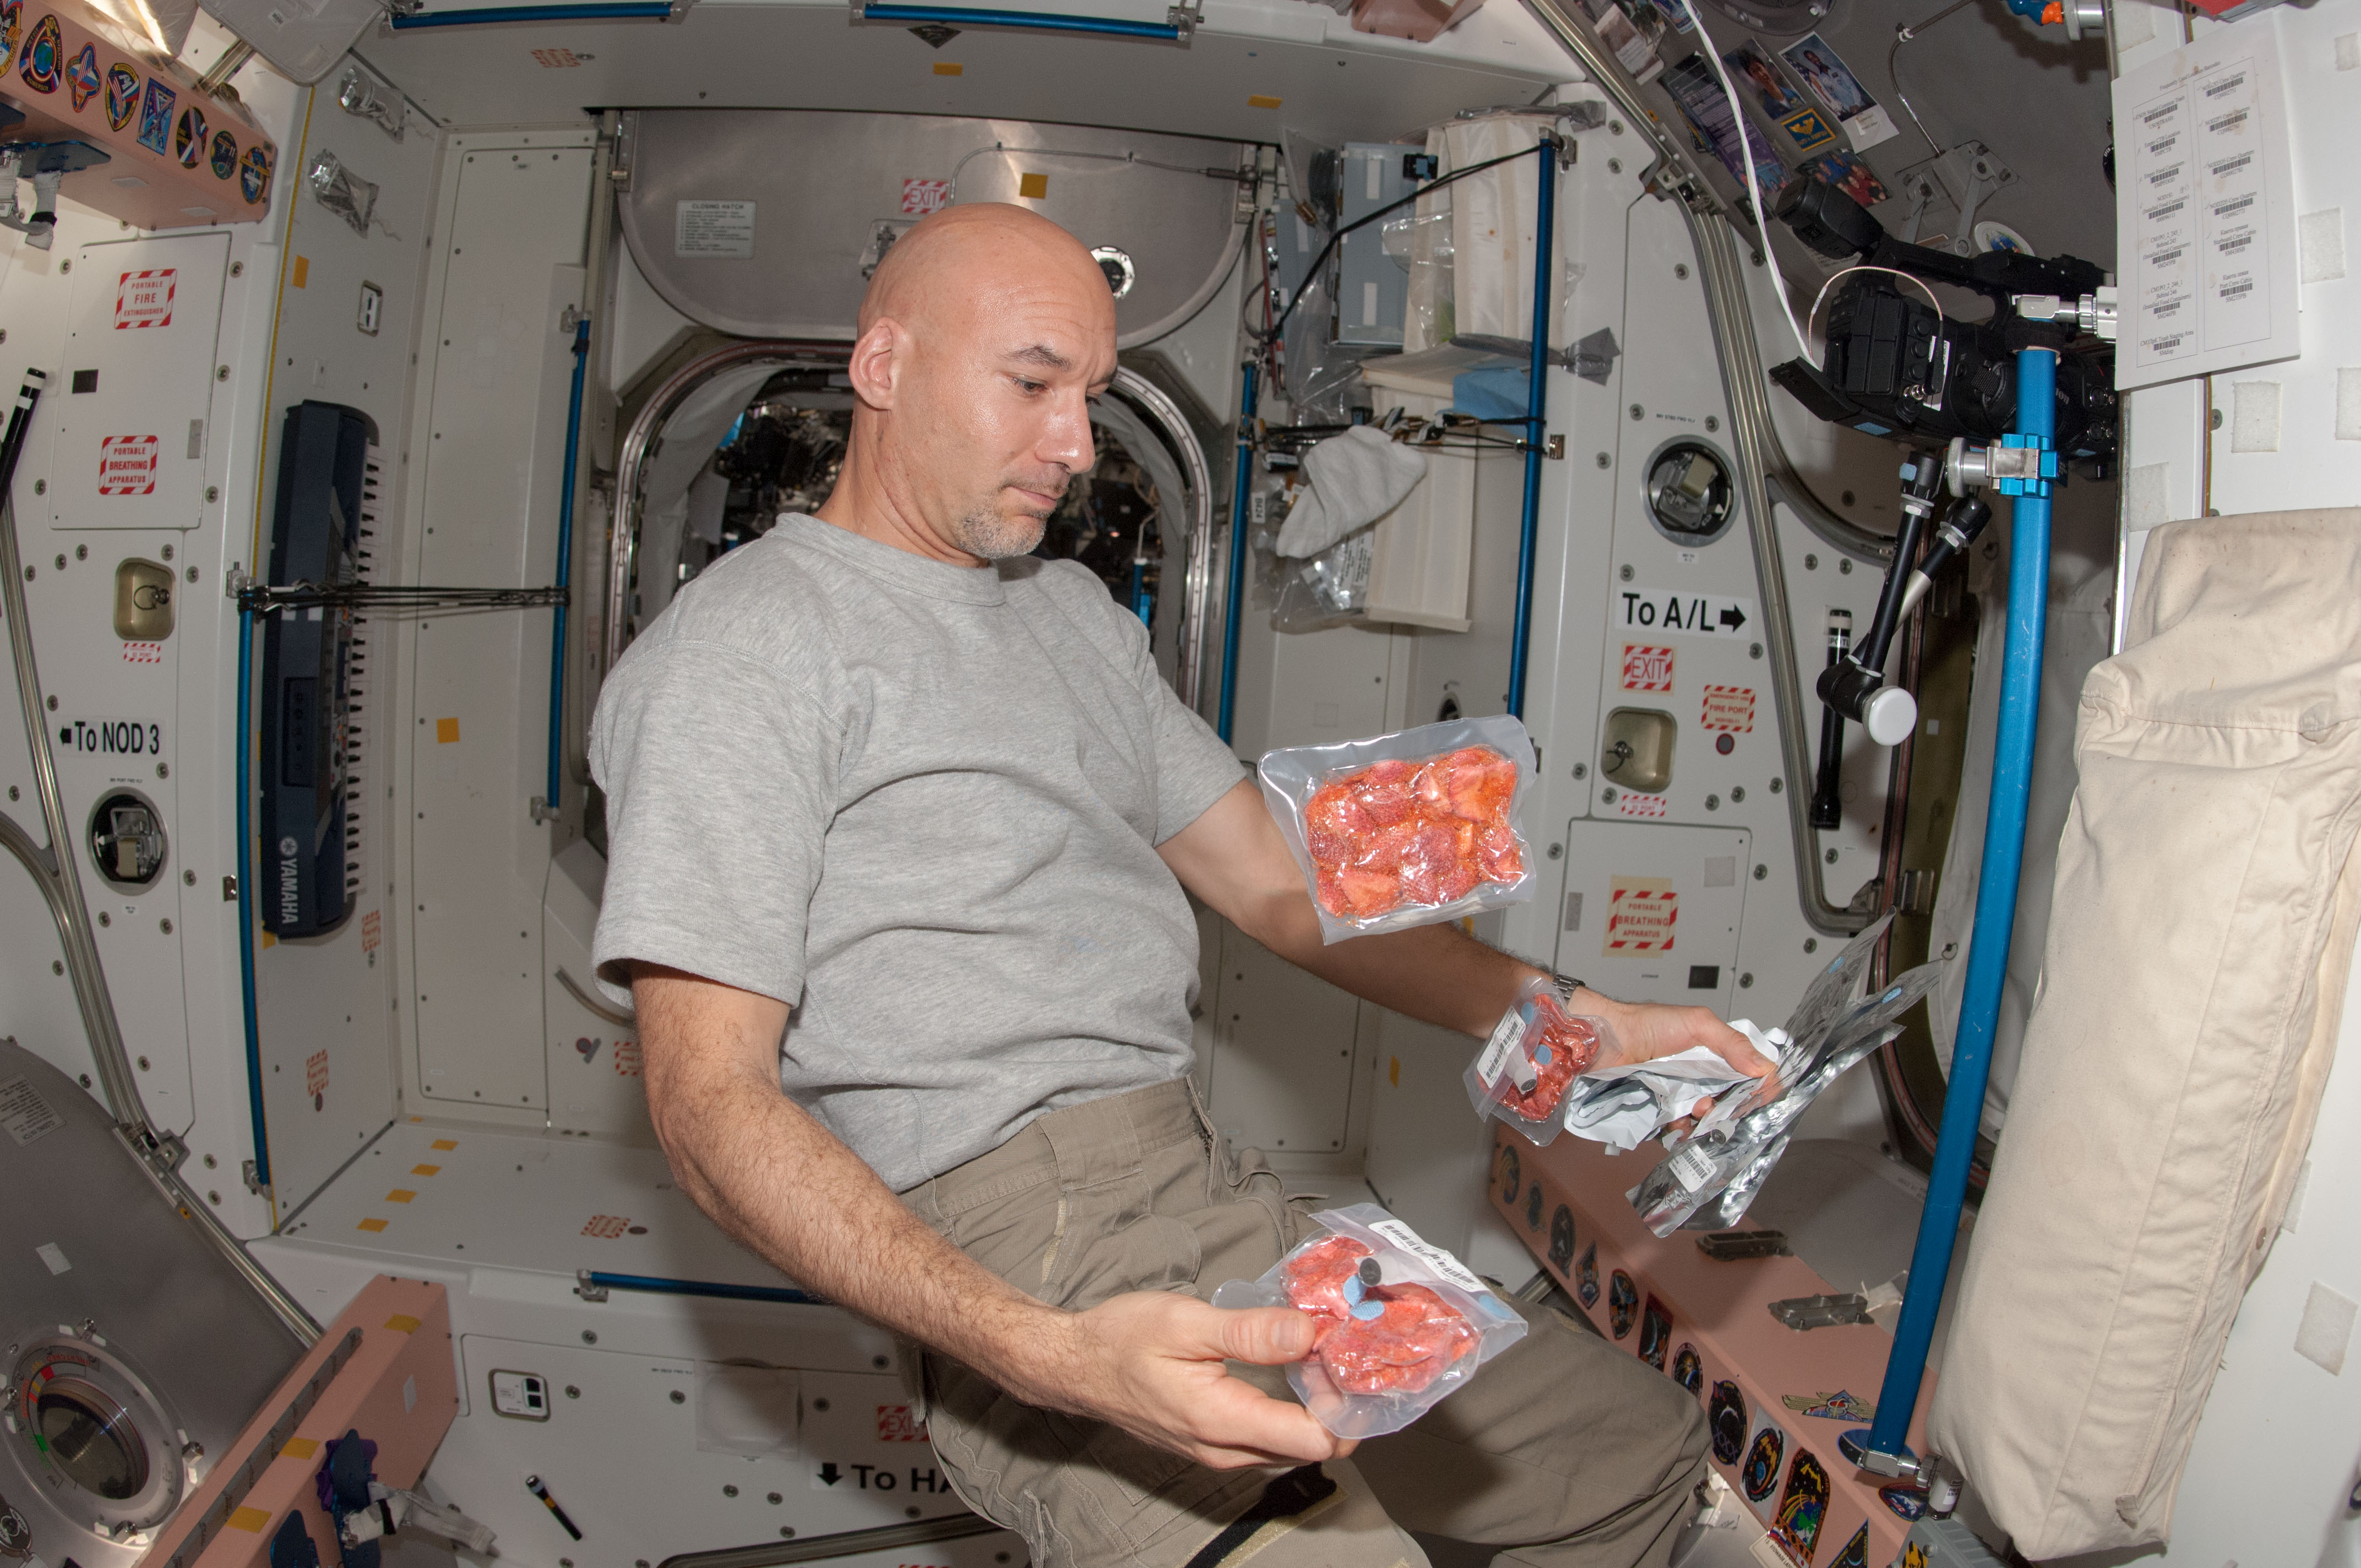 how do astronauts eat in space nasa - photo #11